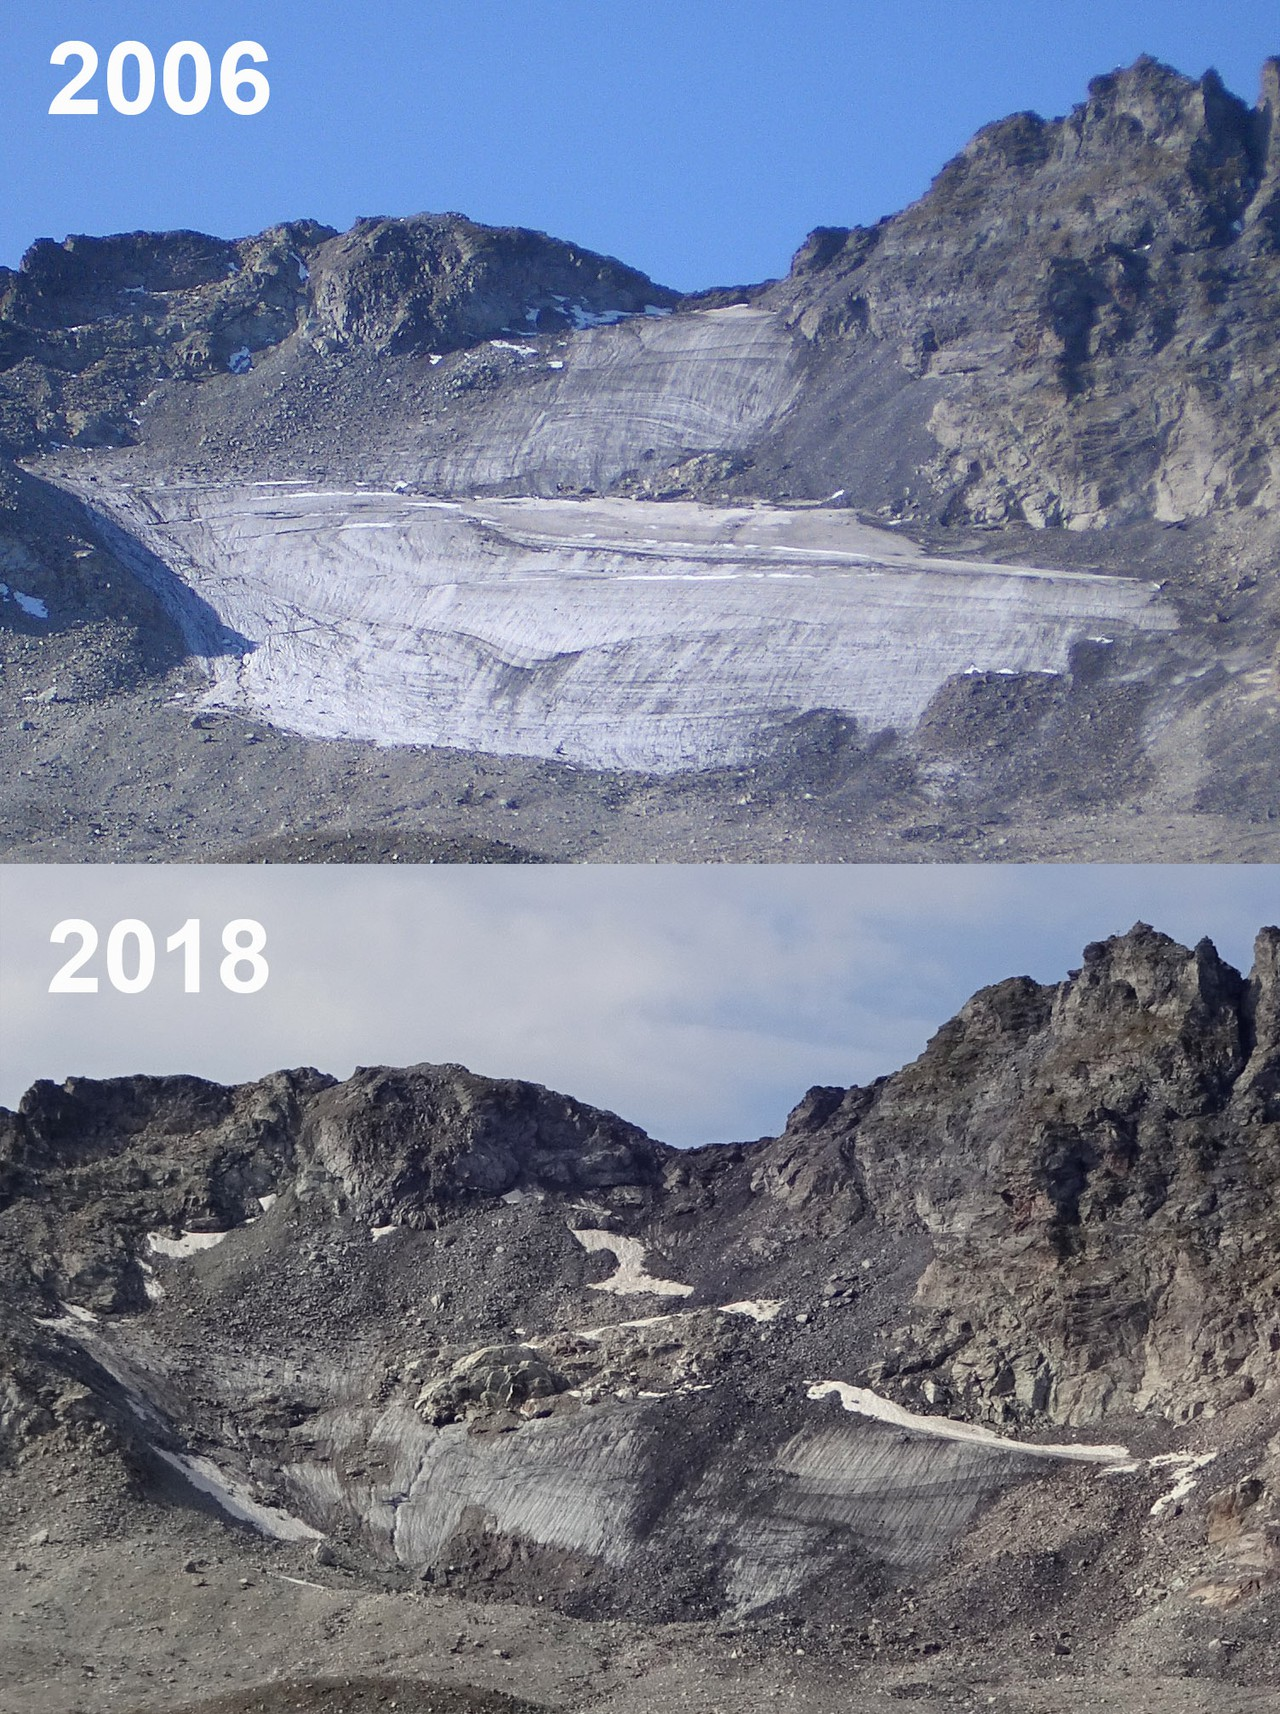 Evolution of Pizol glacier (Credit: M. Huss)